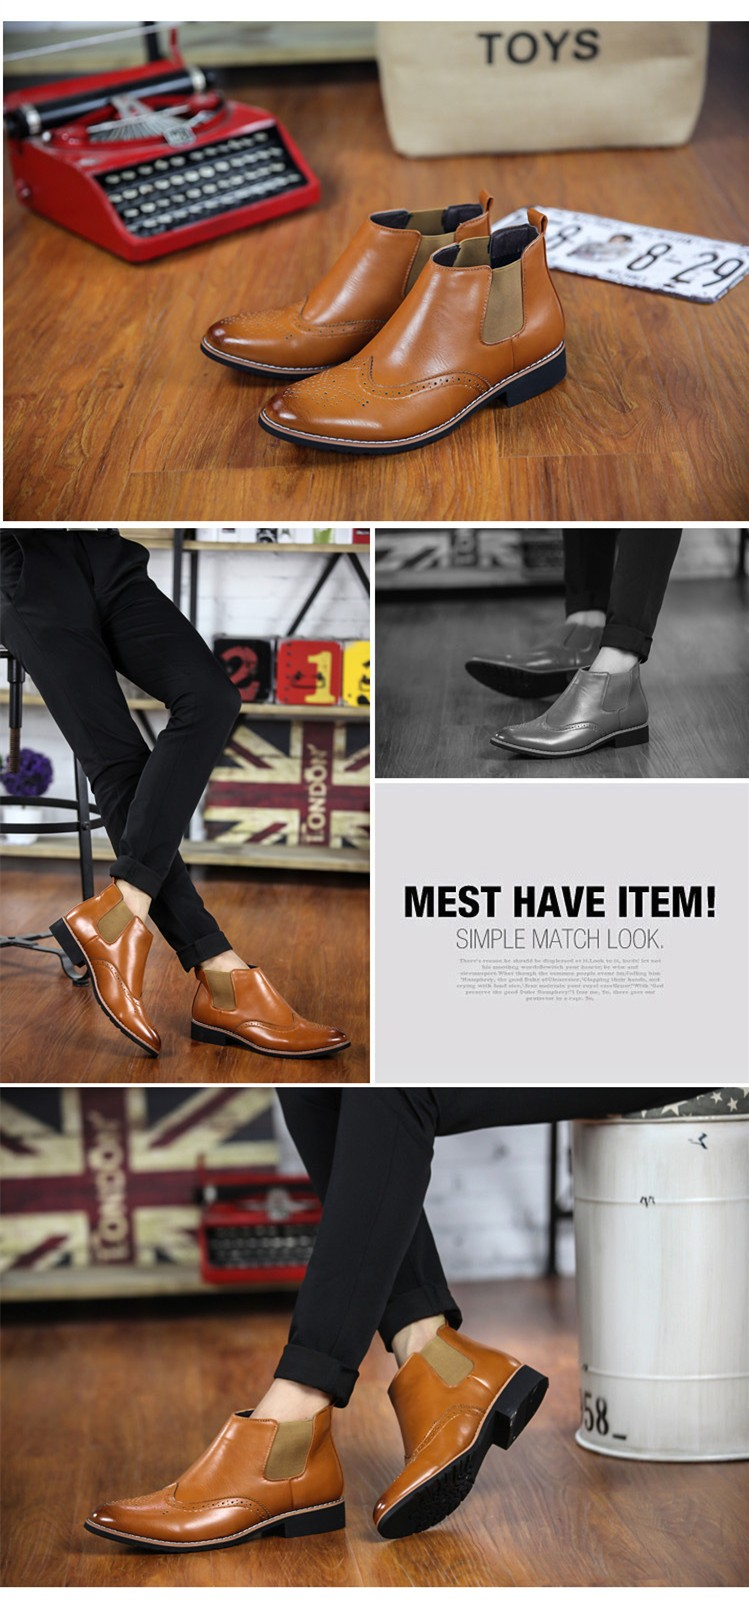 LOVE Spring Autumn Men\'s Chelsea Boots Casual Round Toe Brogue Leather Boots For Men Ankle Boots Square Heel Dress Shoes F107 (6)